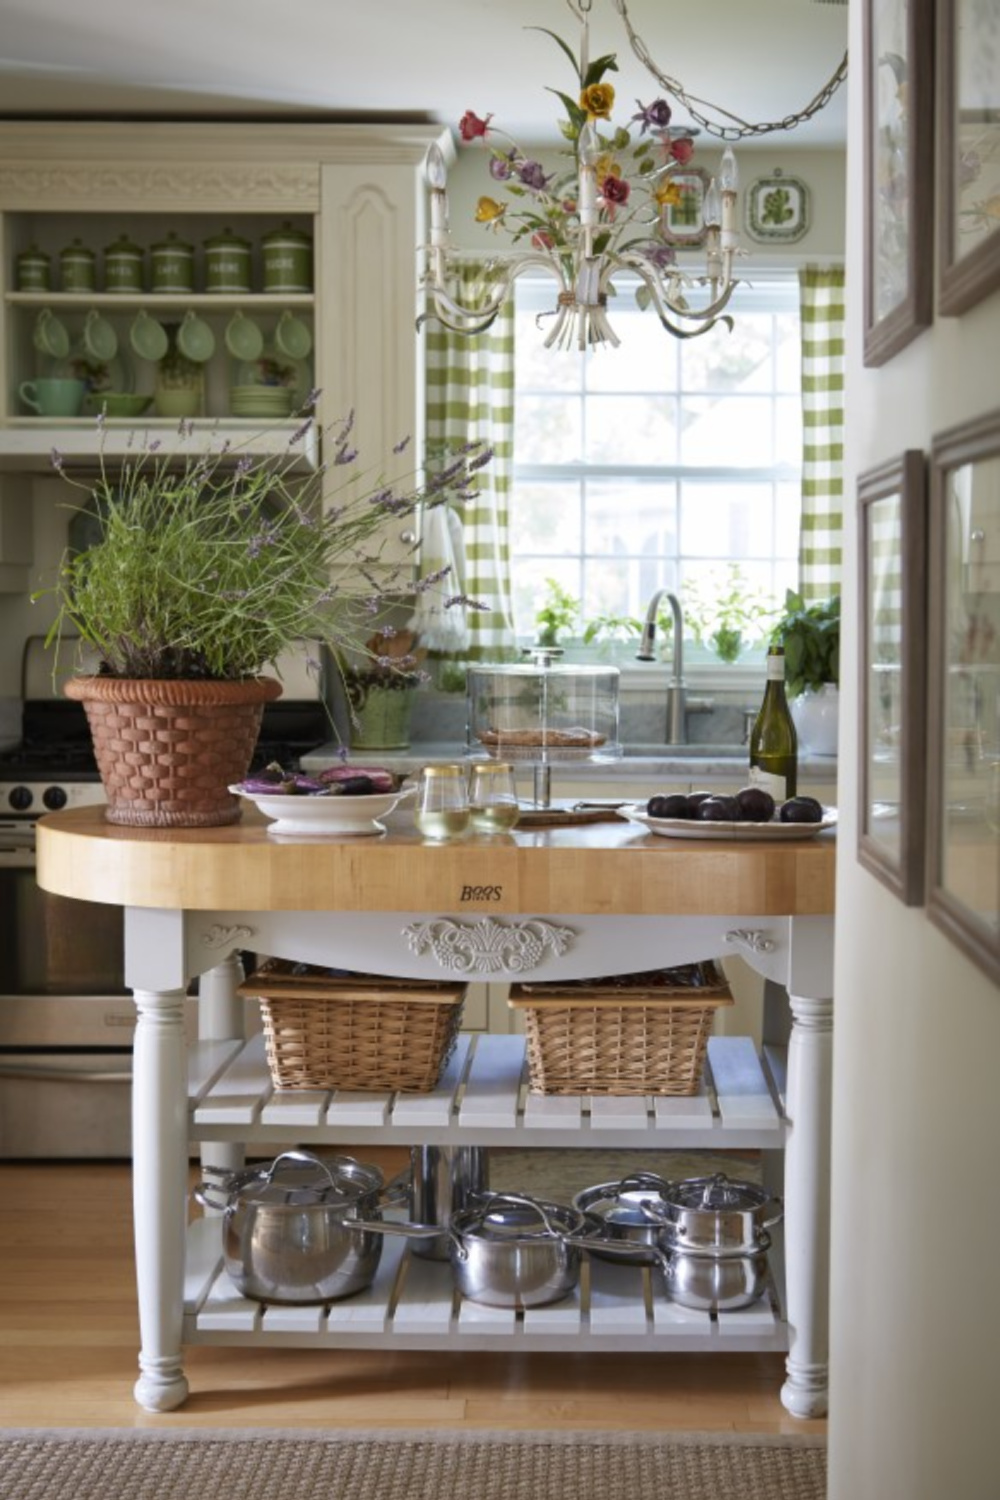 Green kitchen with French country style by Amy Chalmers (MaisonDecor) featured in Nora Murphy's Country House Book! #frenchcountrykitchen #greenkitchen